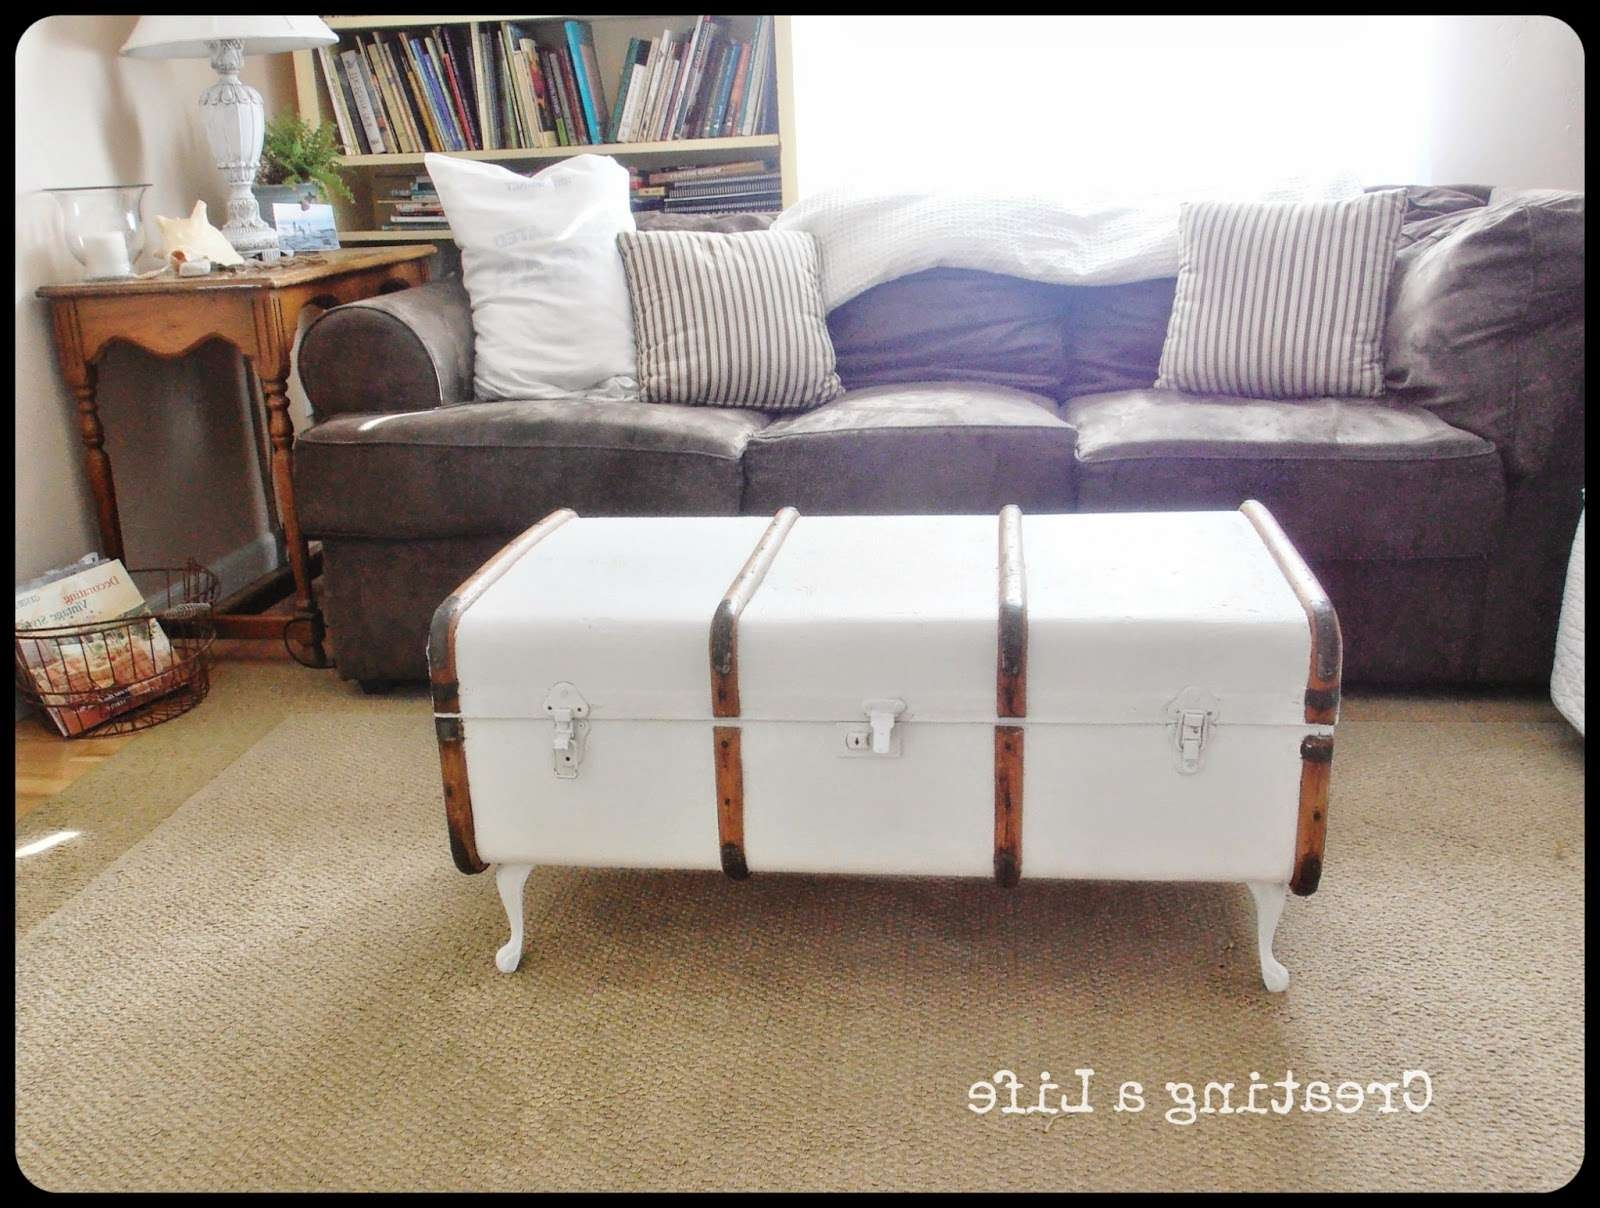 Well Liked Old Trunks As Coffee Tables Within Creating A Life: Vintage Trunk Coffee Table (View 19 of 20)